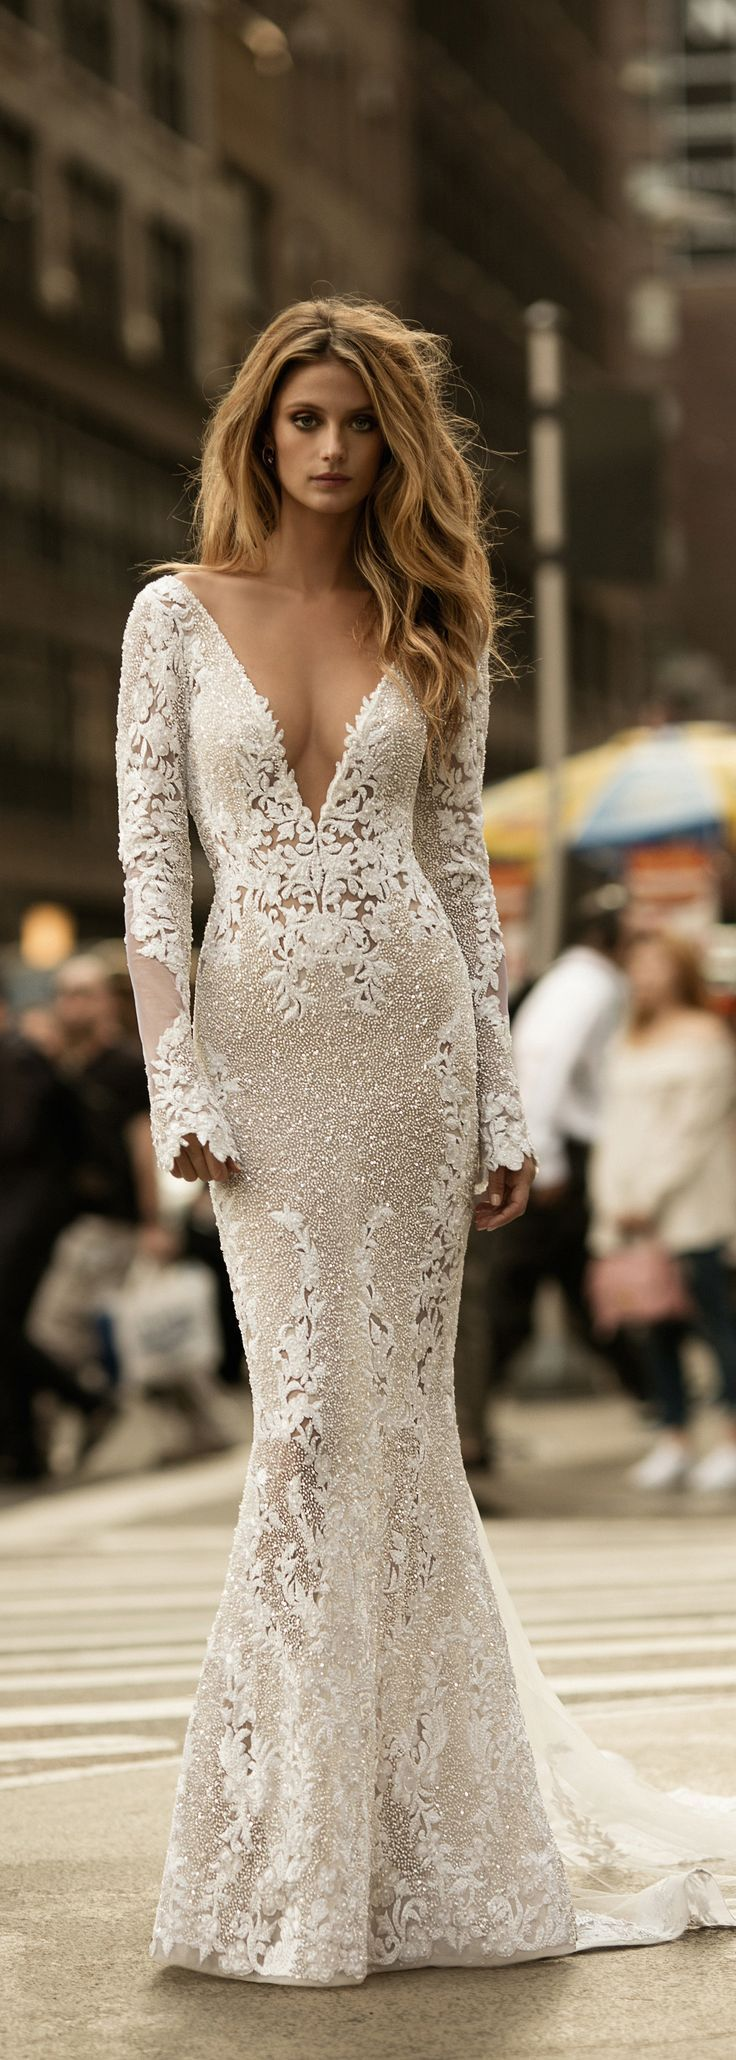 New berta fw masterpiece bridal collection coming soon women